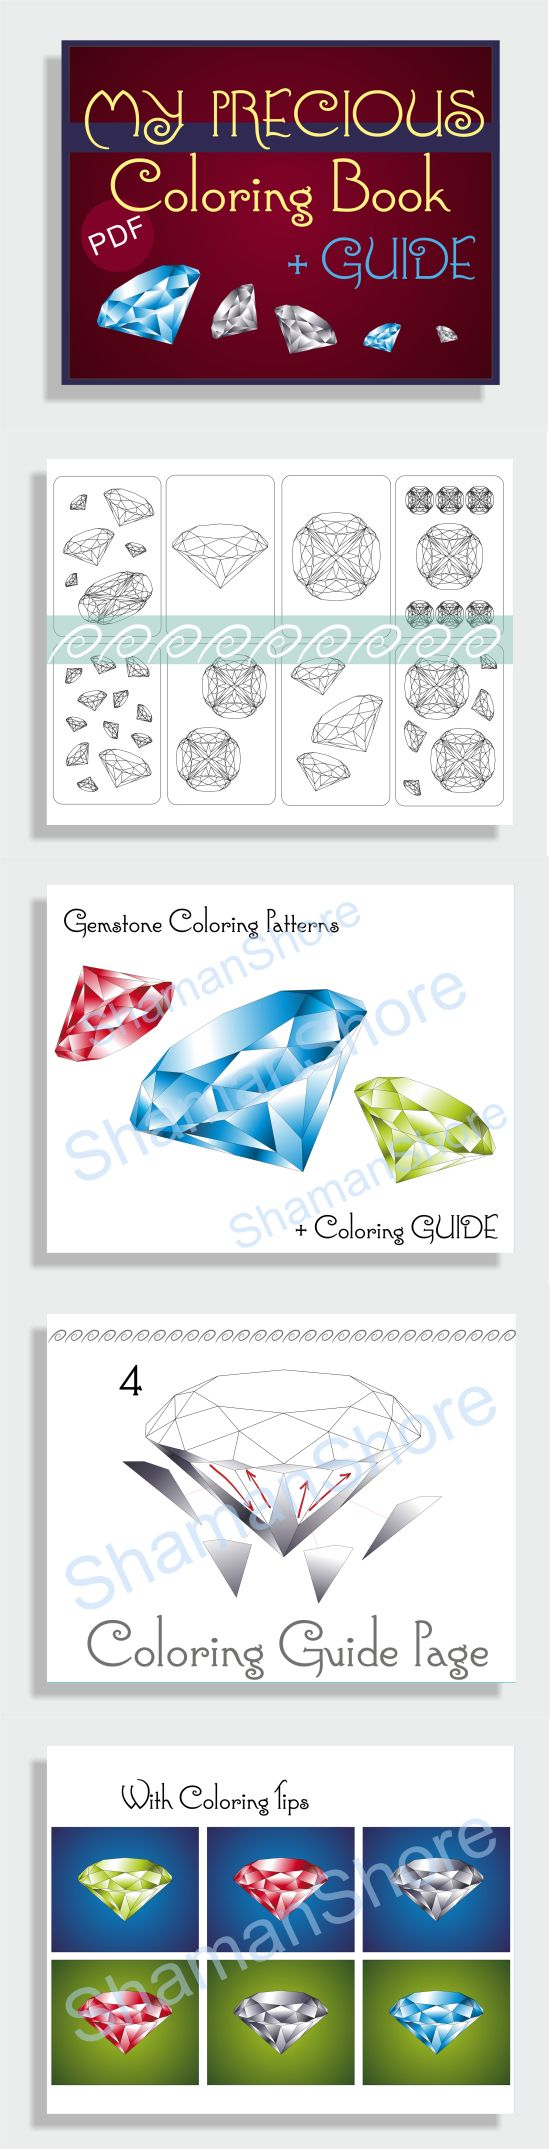 Gemstone coloring pages for grown-ups & gemstone coloring guide. Adult coloring book, pdf. With diamond drawing tutorial.